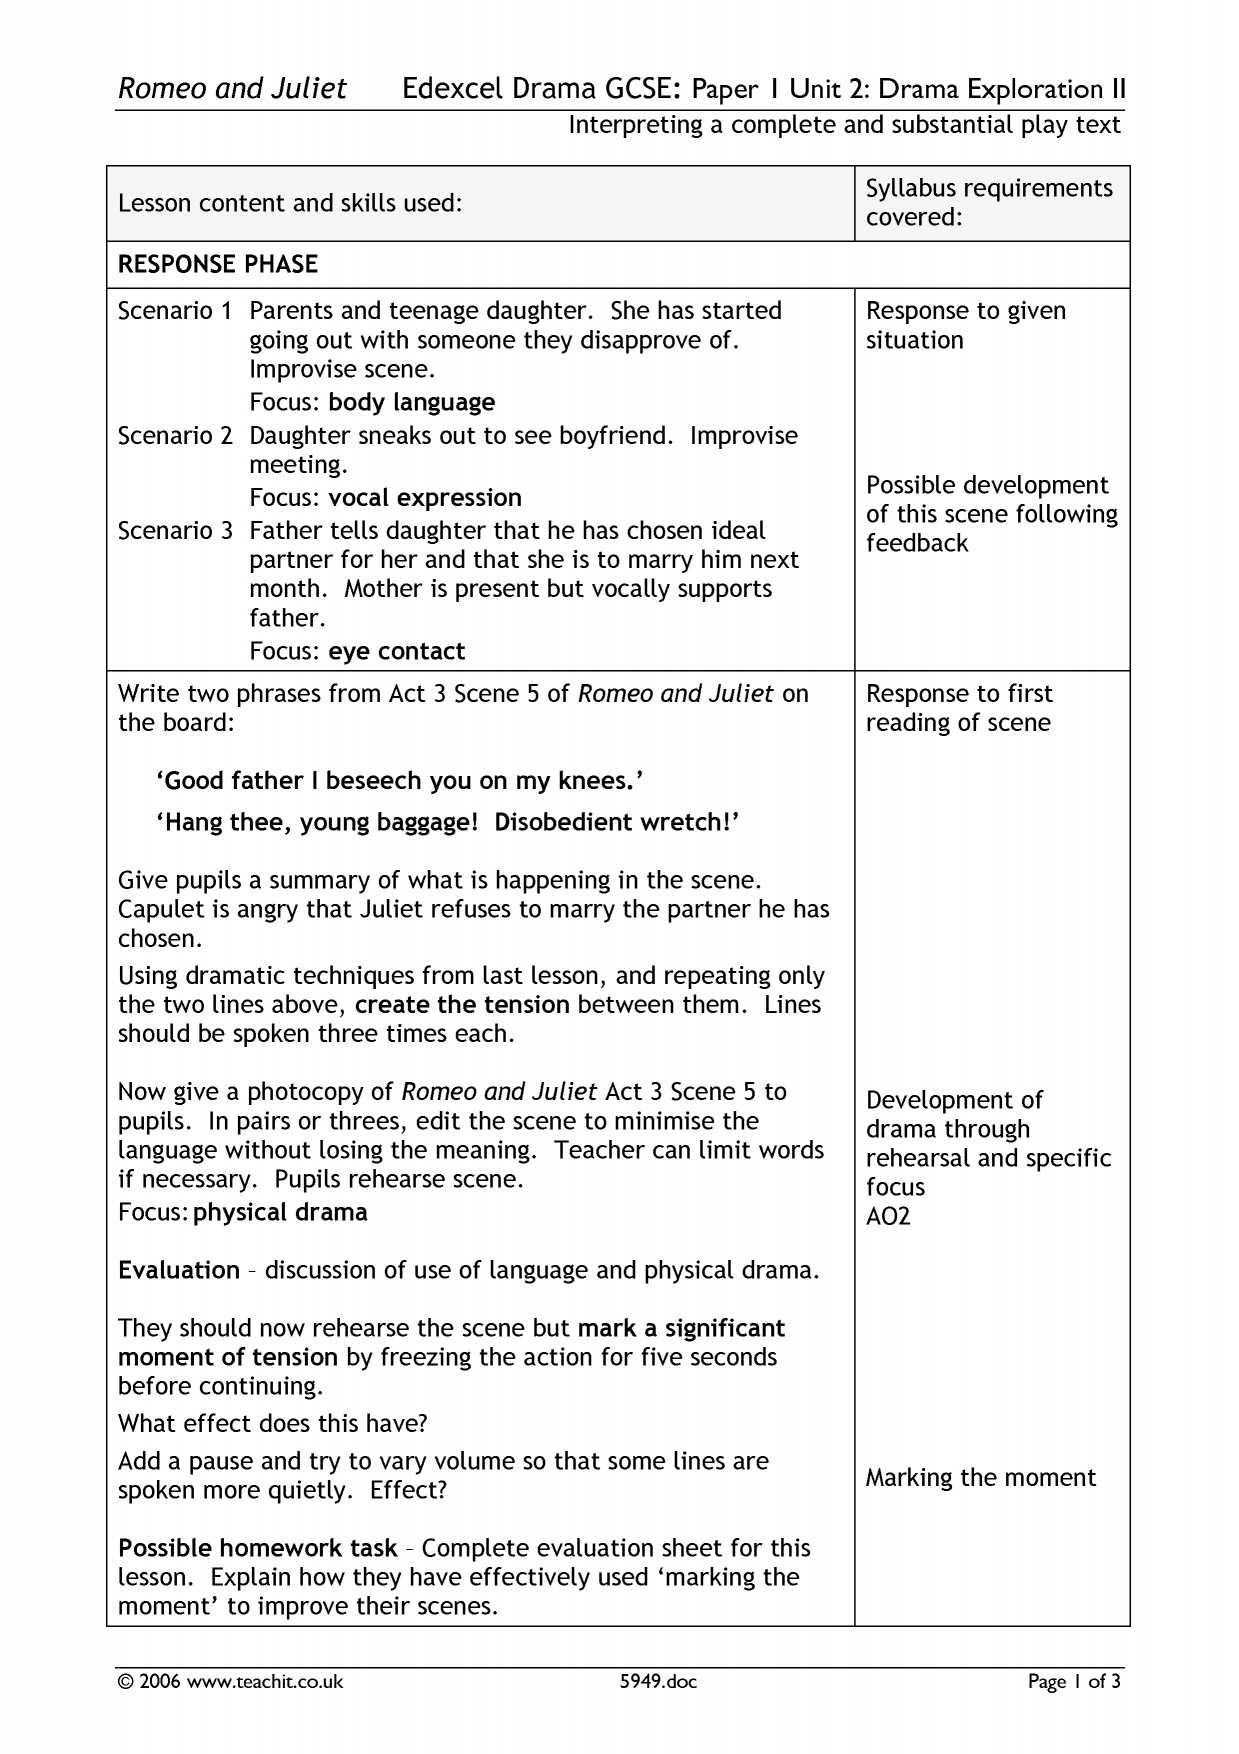 Avatar Movie Lesson Plan Worksheets or Unit Search Results Teachit English